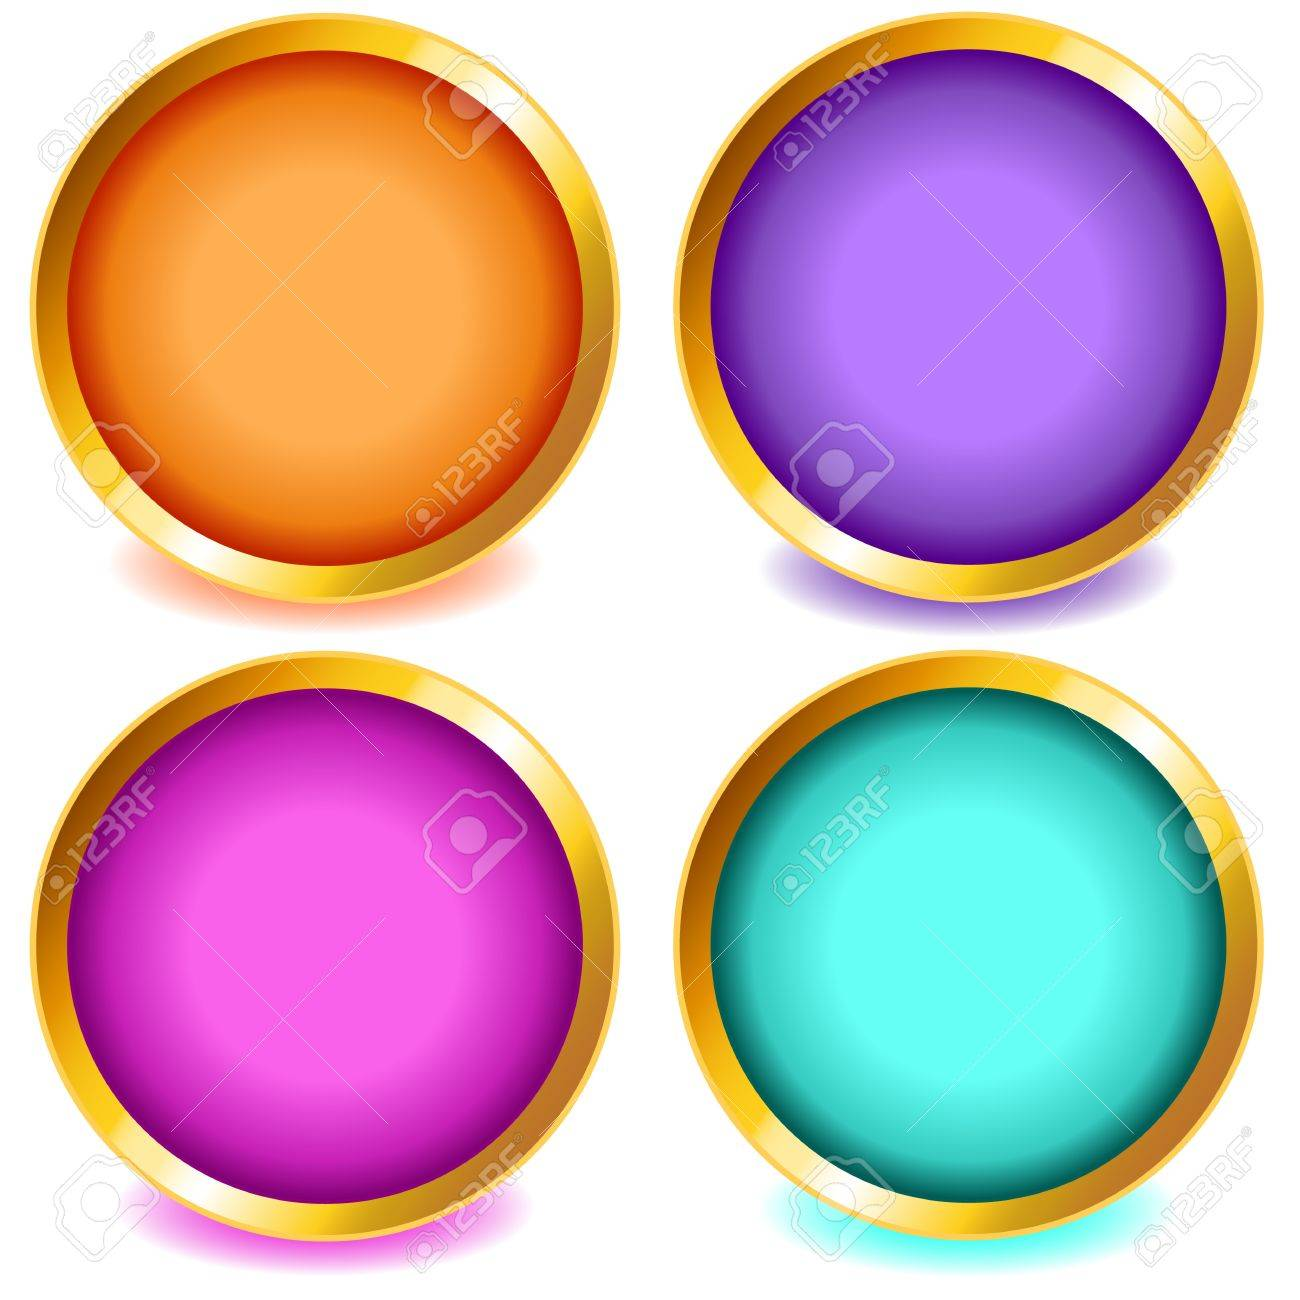 39929a917198 Fun colorful web buttons with drop shadows in orange, pink, purple, aqua  with